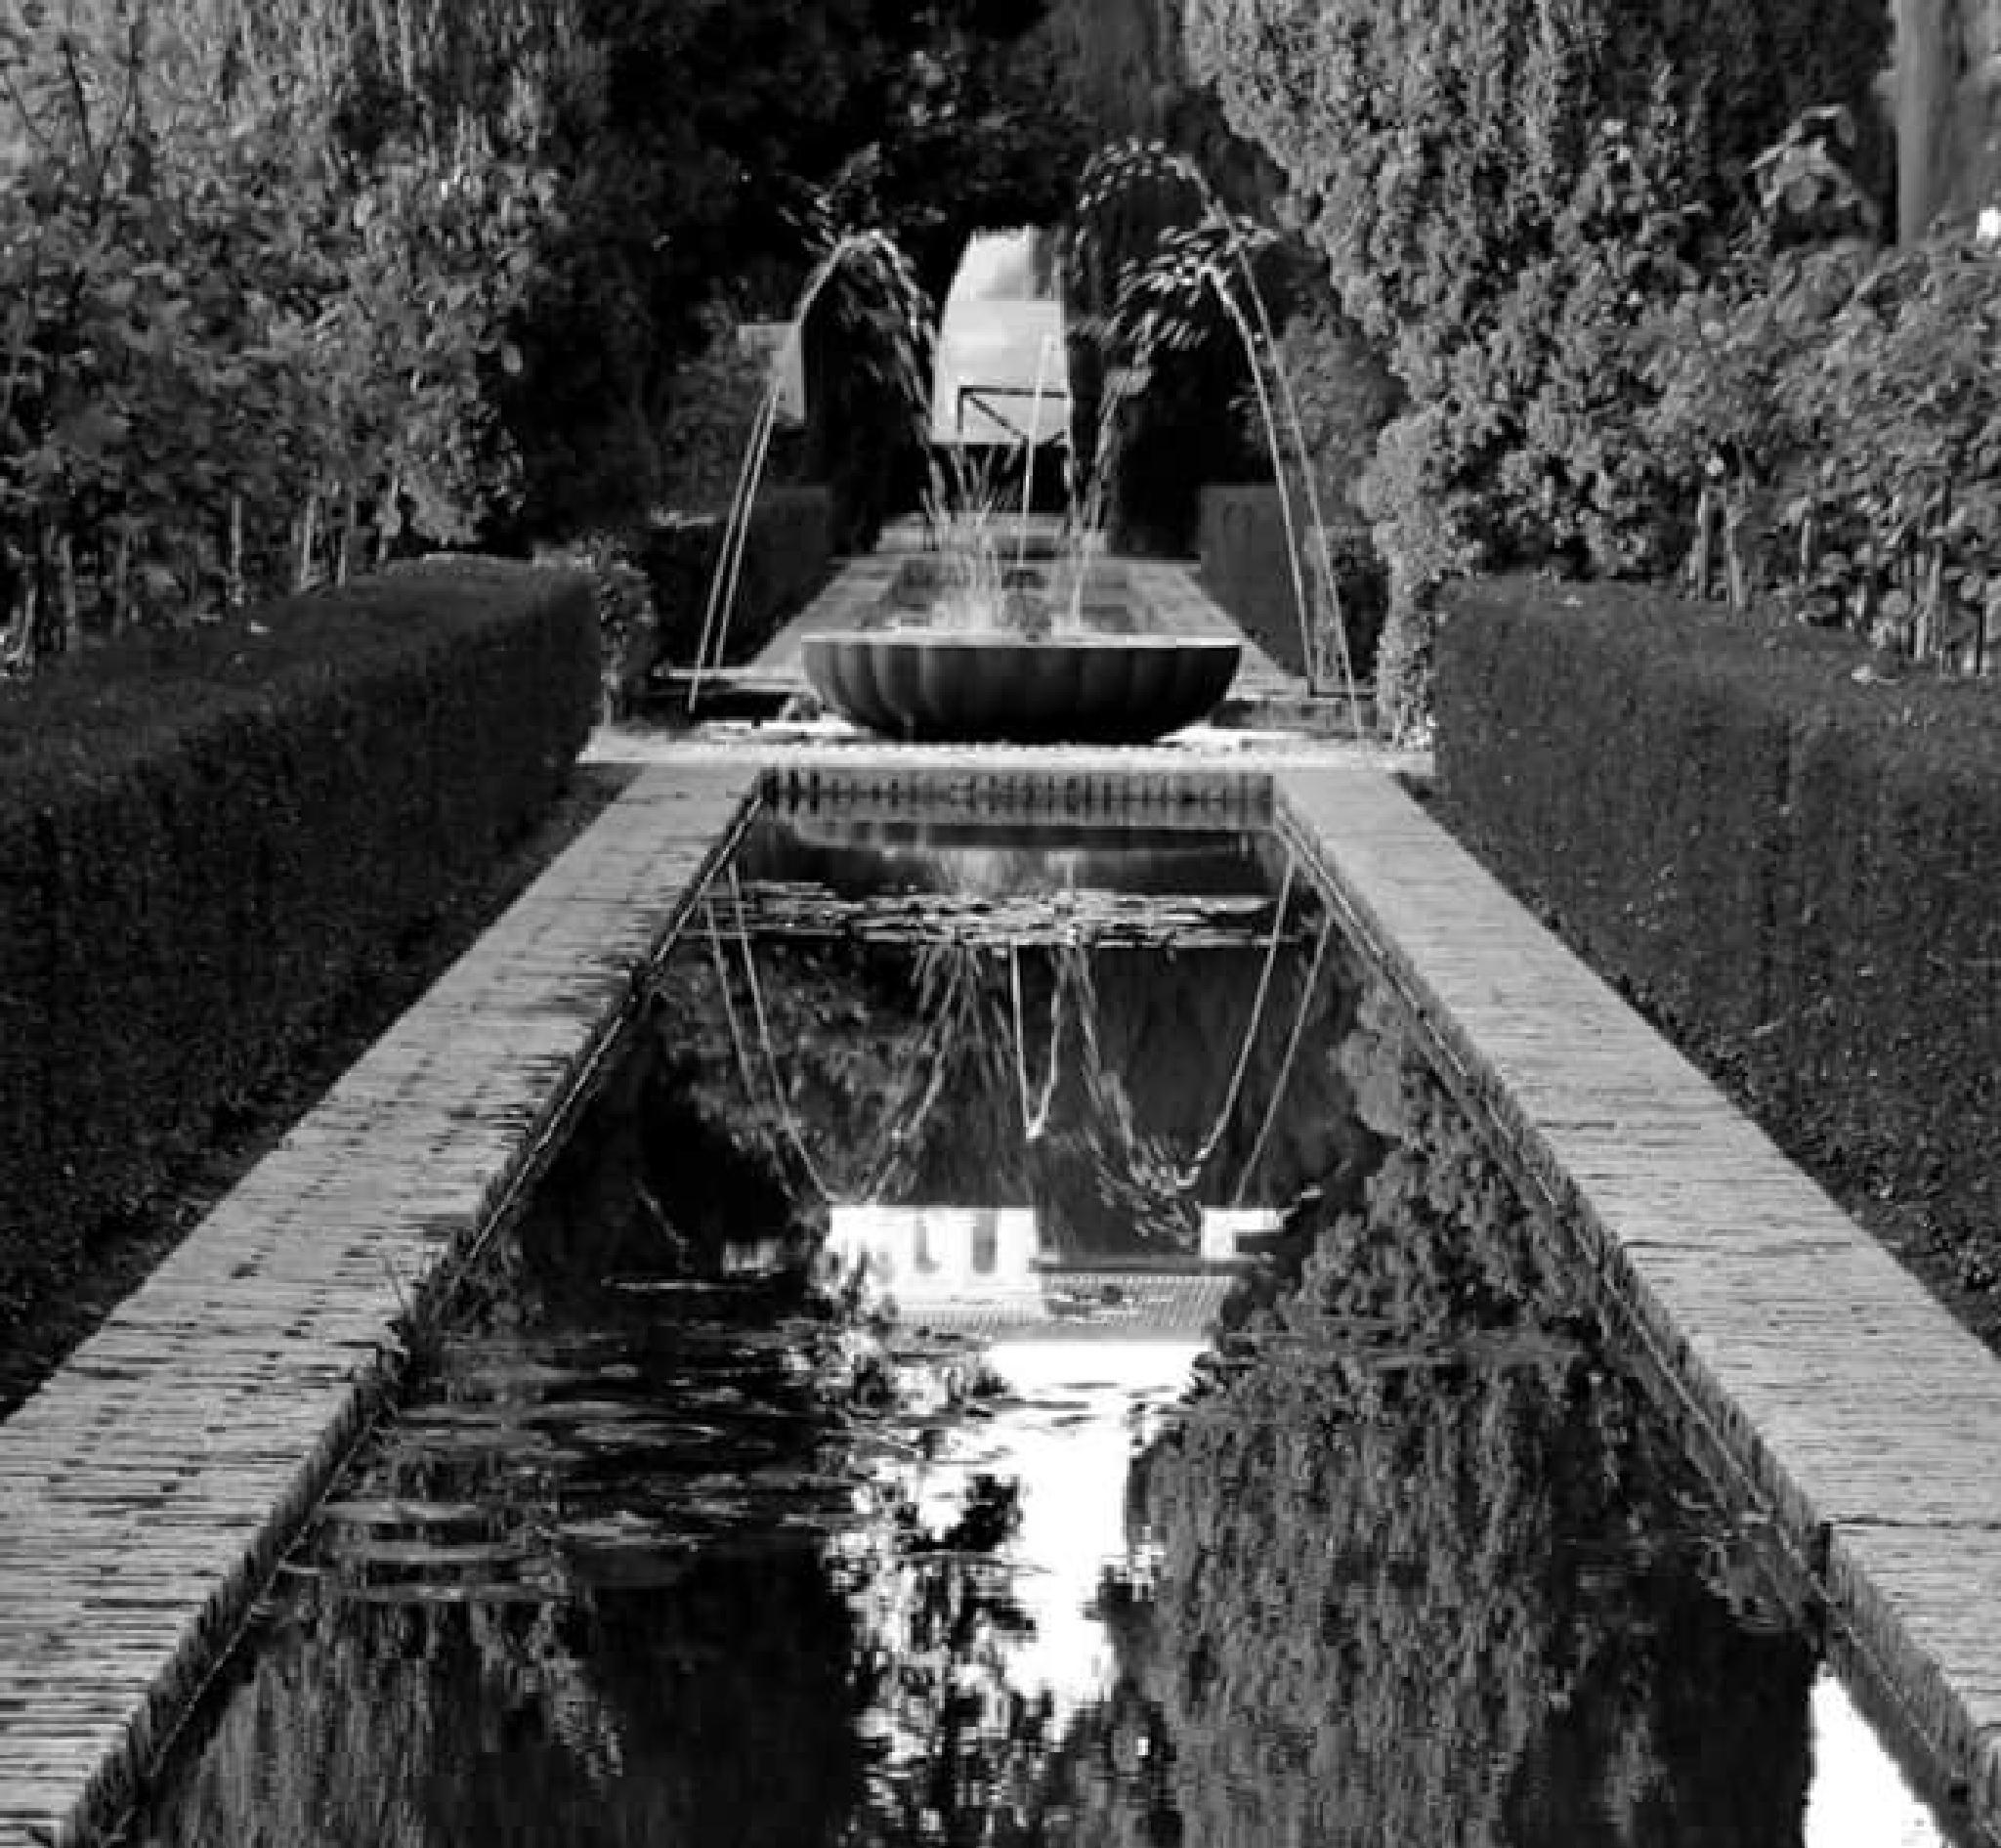 Garden in the Alhambra, Granada by thierrylorenzo